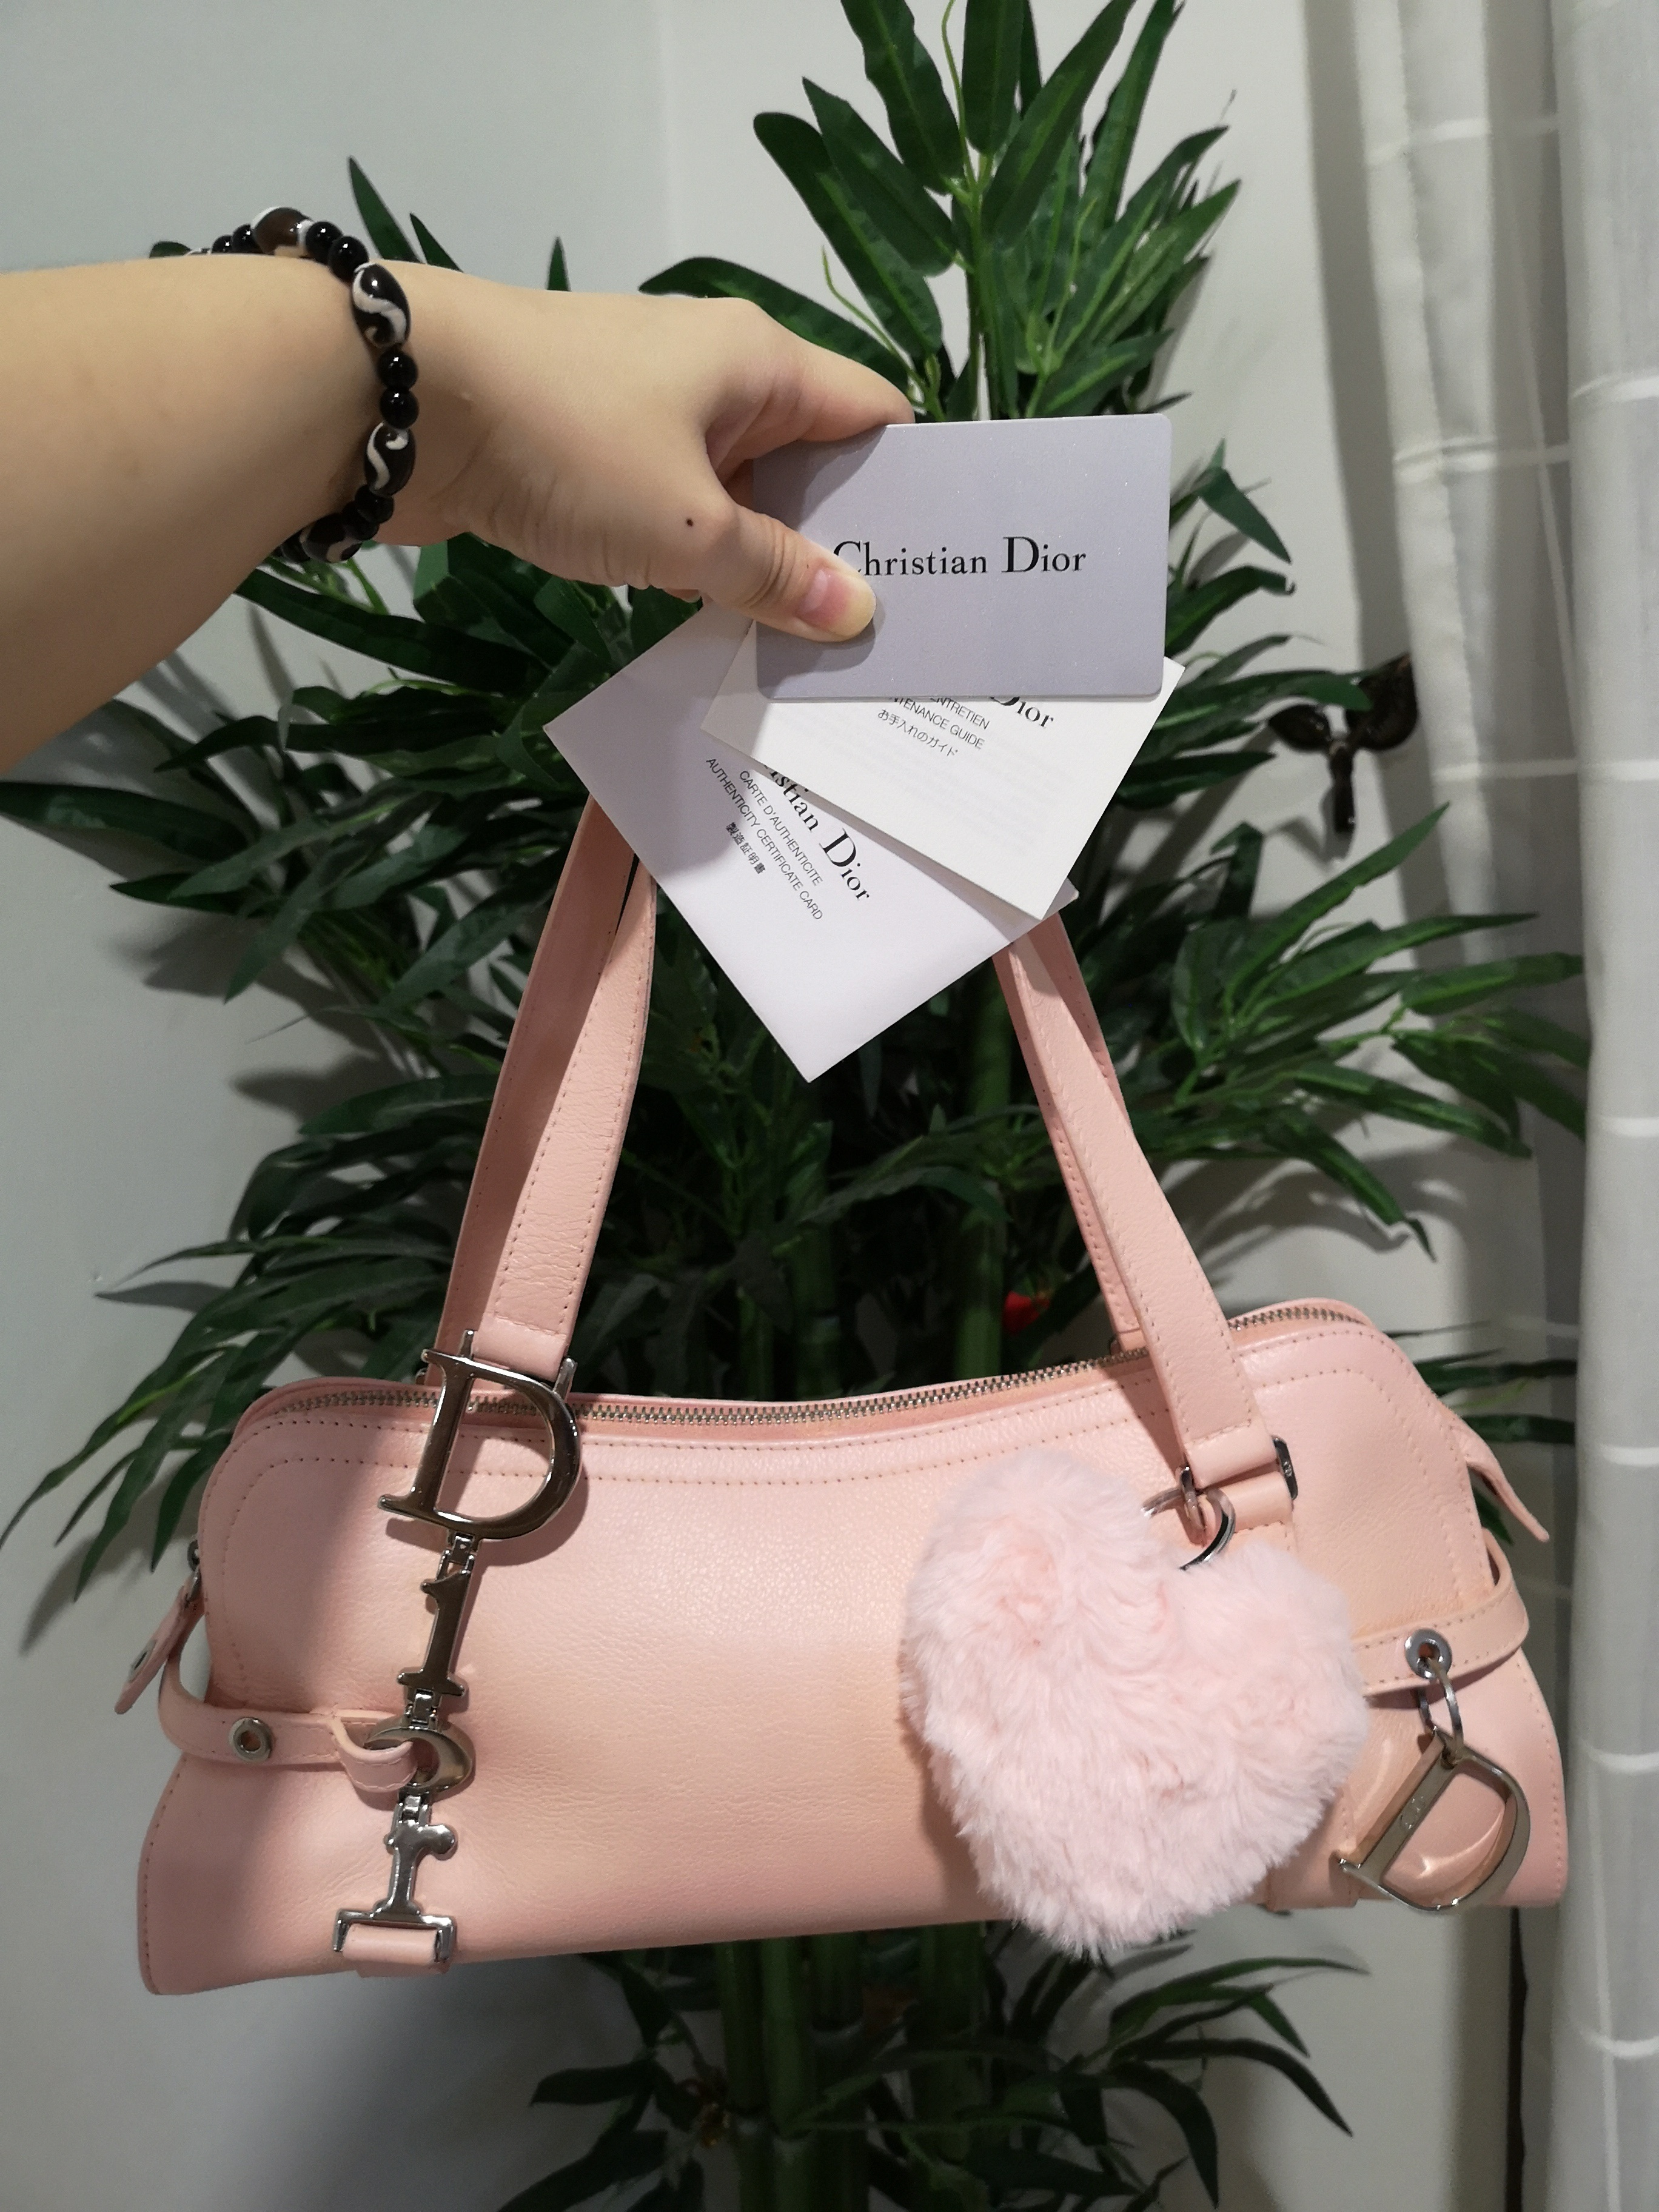 081bffc9e46e Christian Dior tote bag, free love shape bag charm. 100% guarantee authentic  Measurements : 35x15x11cm Condition : Pristine, bag has been sent and done  with ...